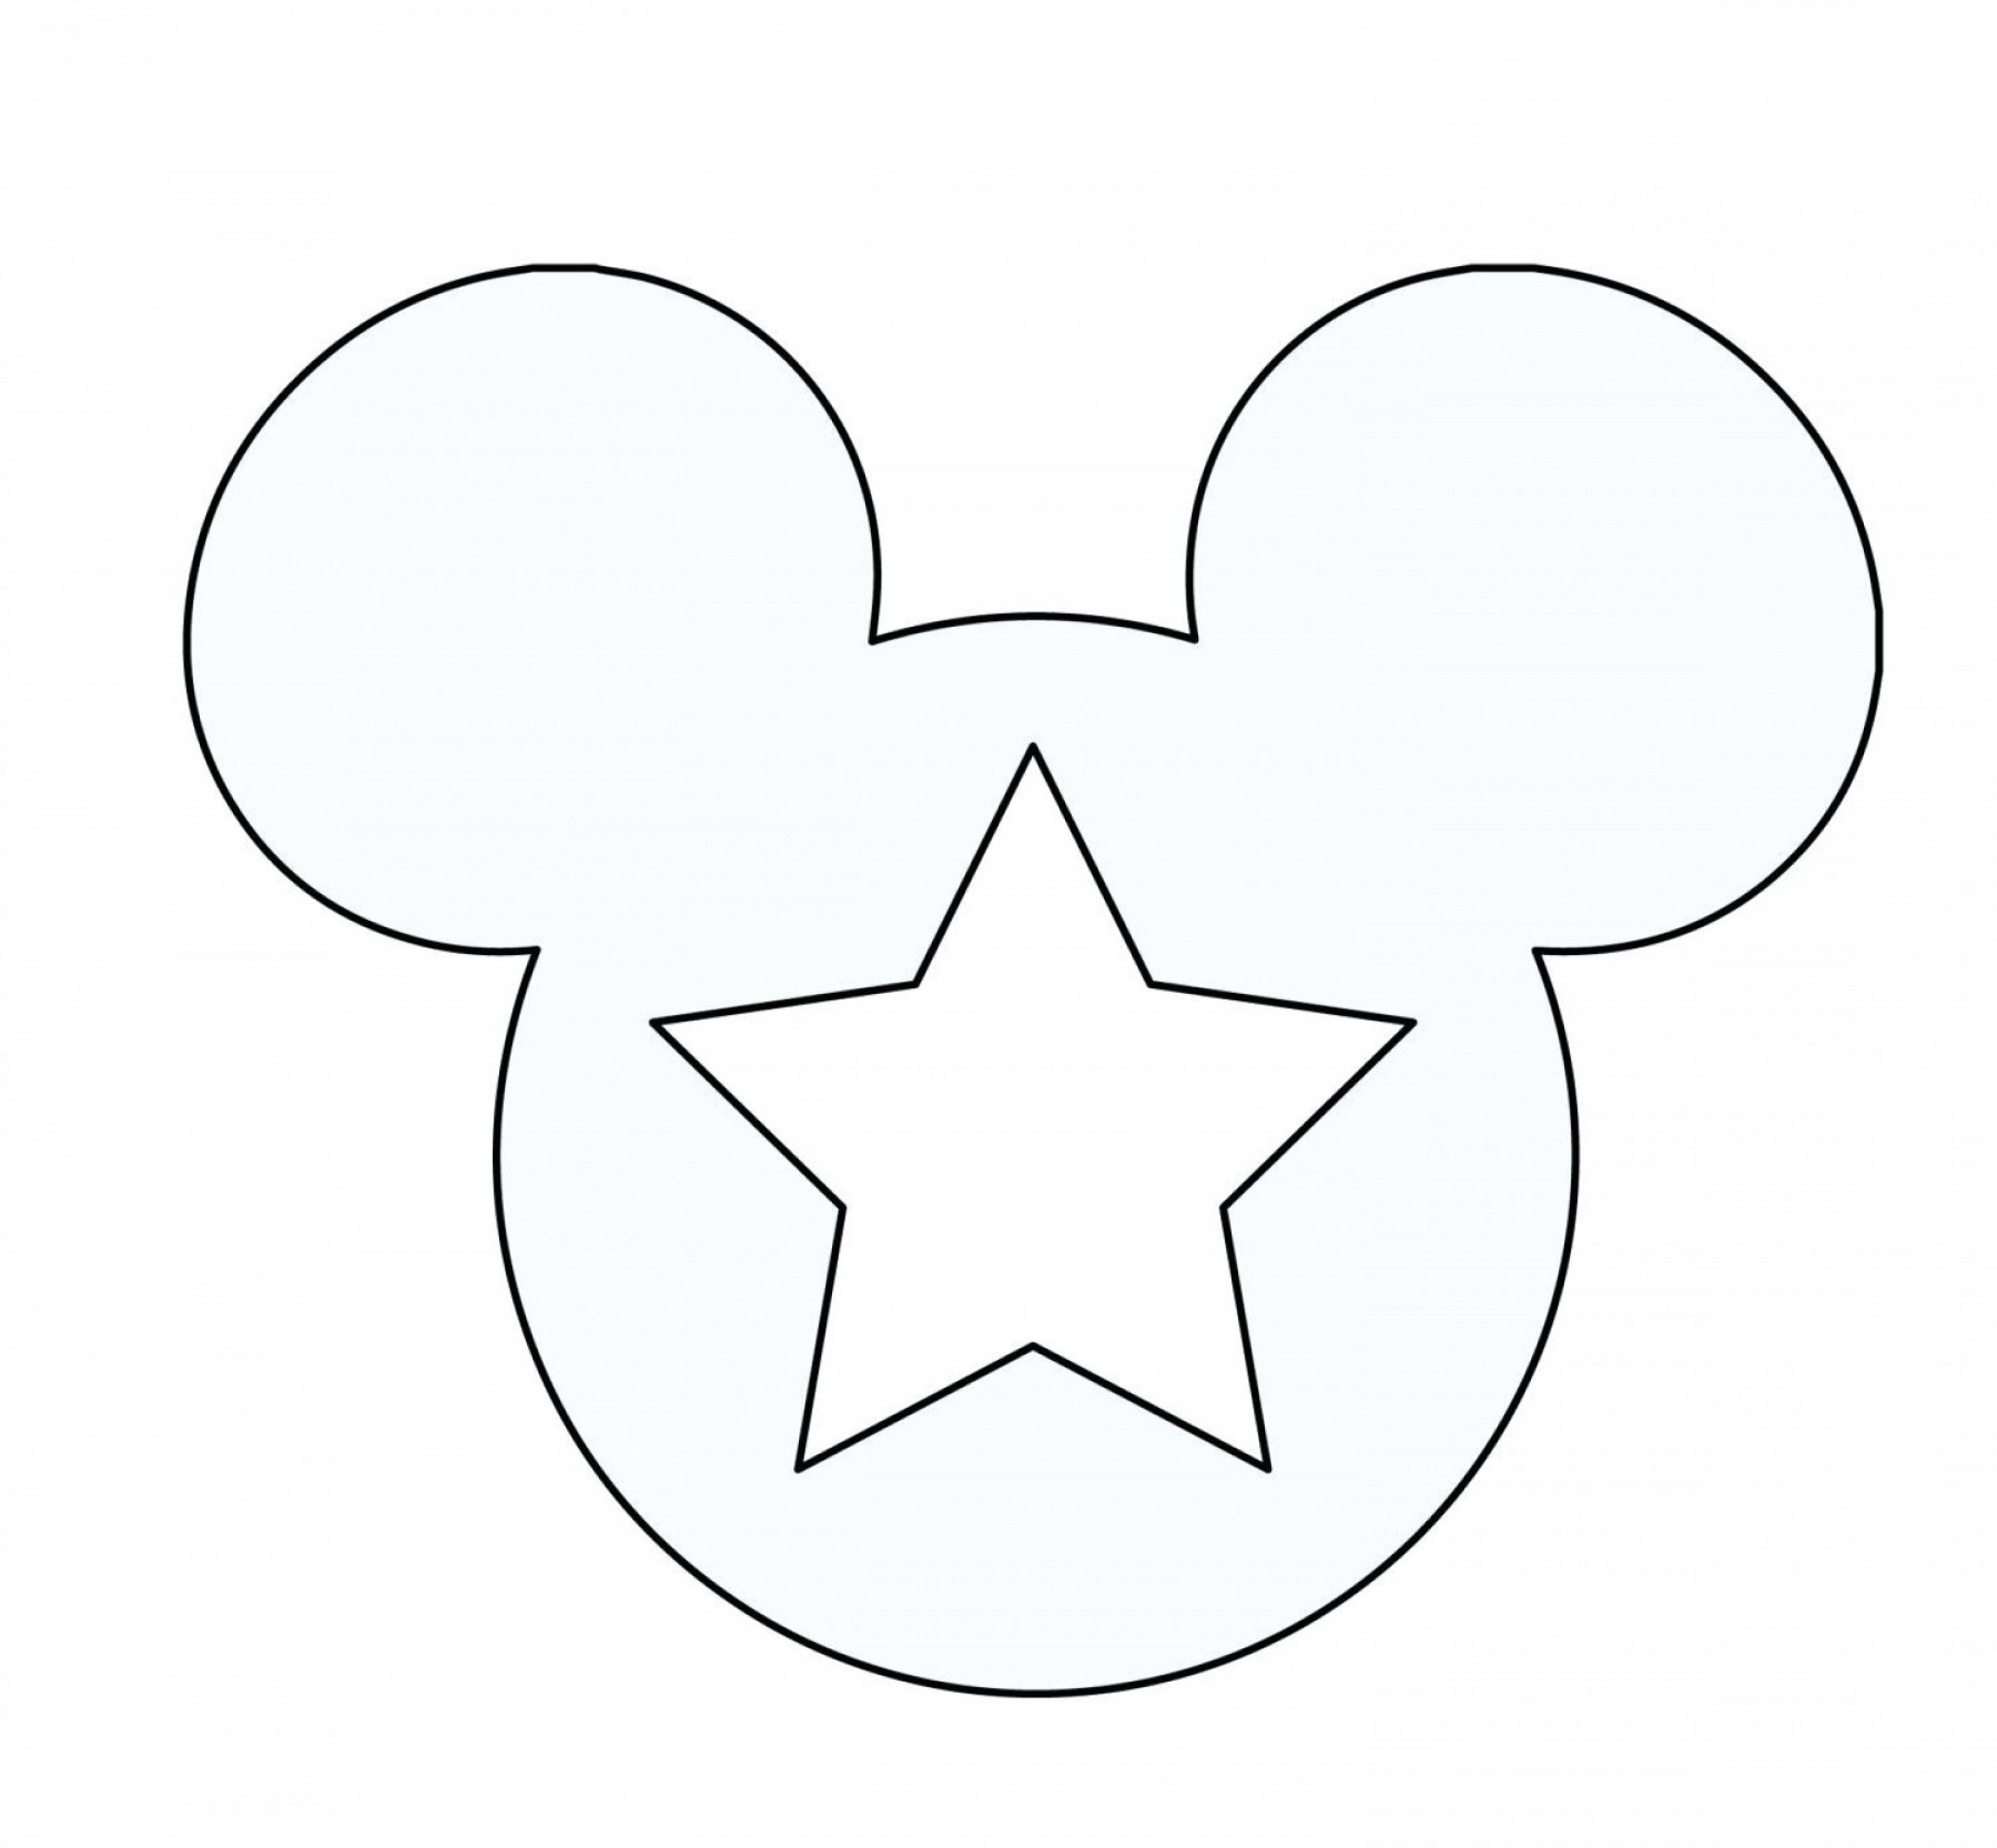 012 Mickey Mouse Template Ears Printable Coloring Pages Ghost Free - Free Printable Mickey Mouse Template